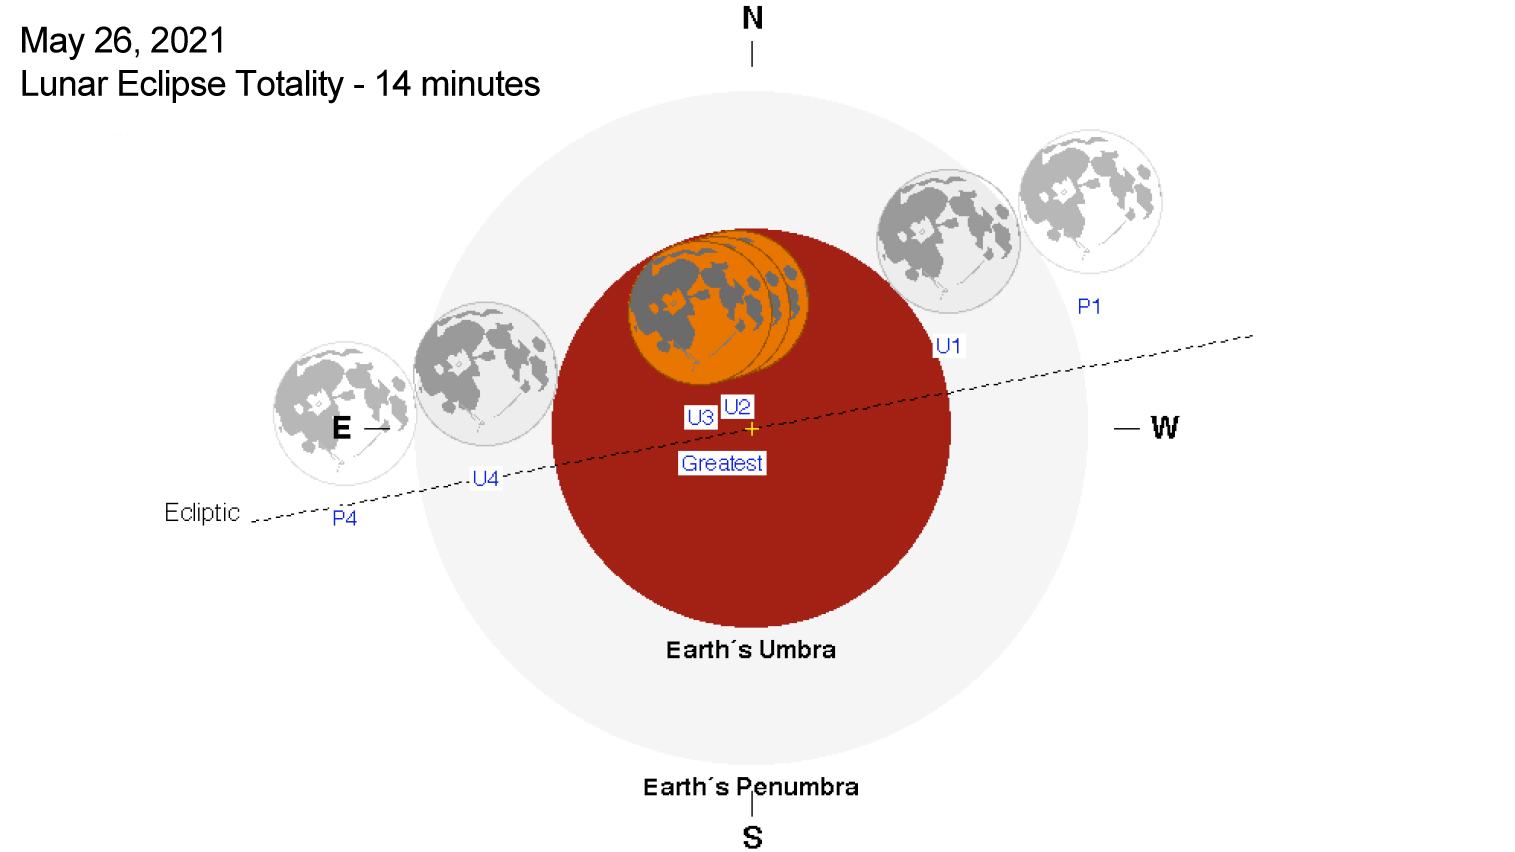 News see the centurys longest total lunar eclipse from anywhere the path of totality of the may 26 2021 total lunar eclipse due to the path being very close to the northern end of the umbra this total eclipse will ccuart Choice Image